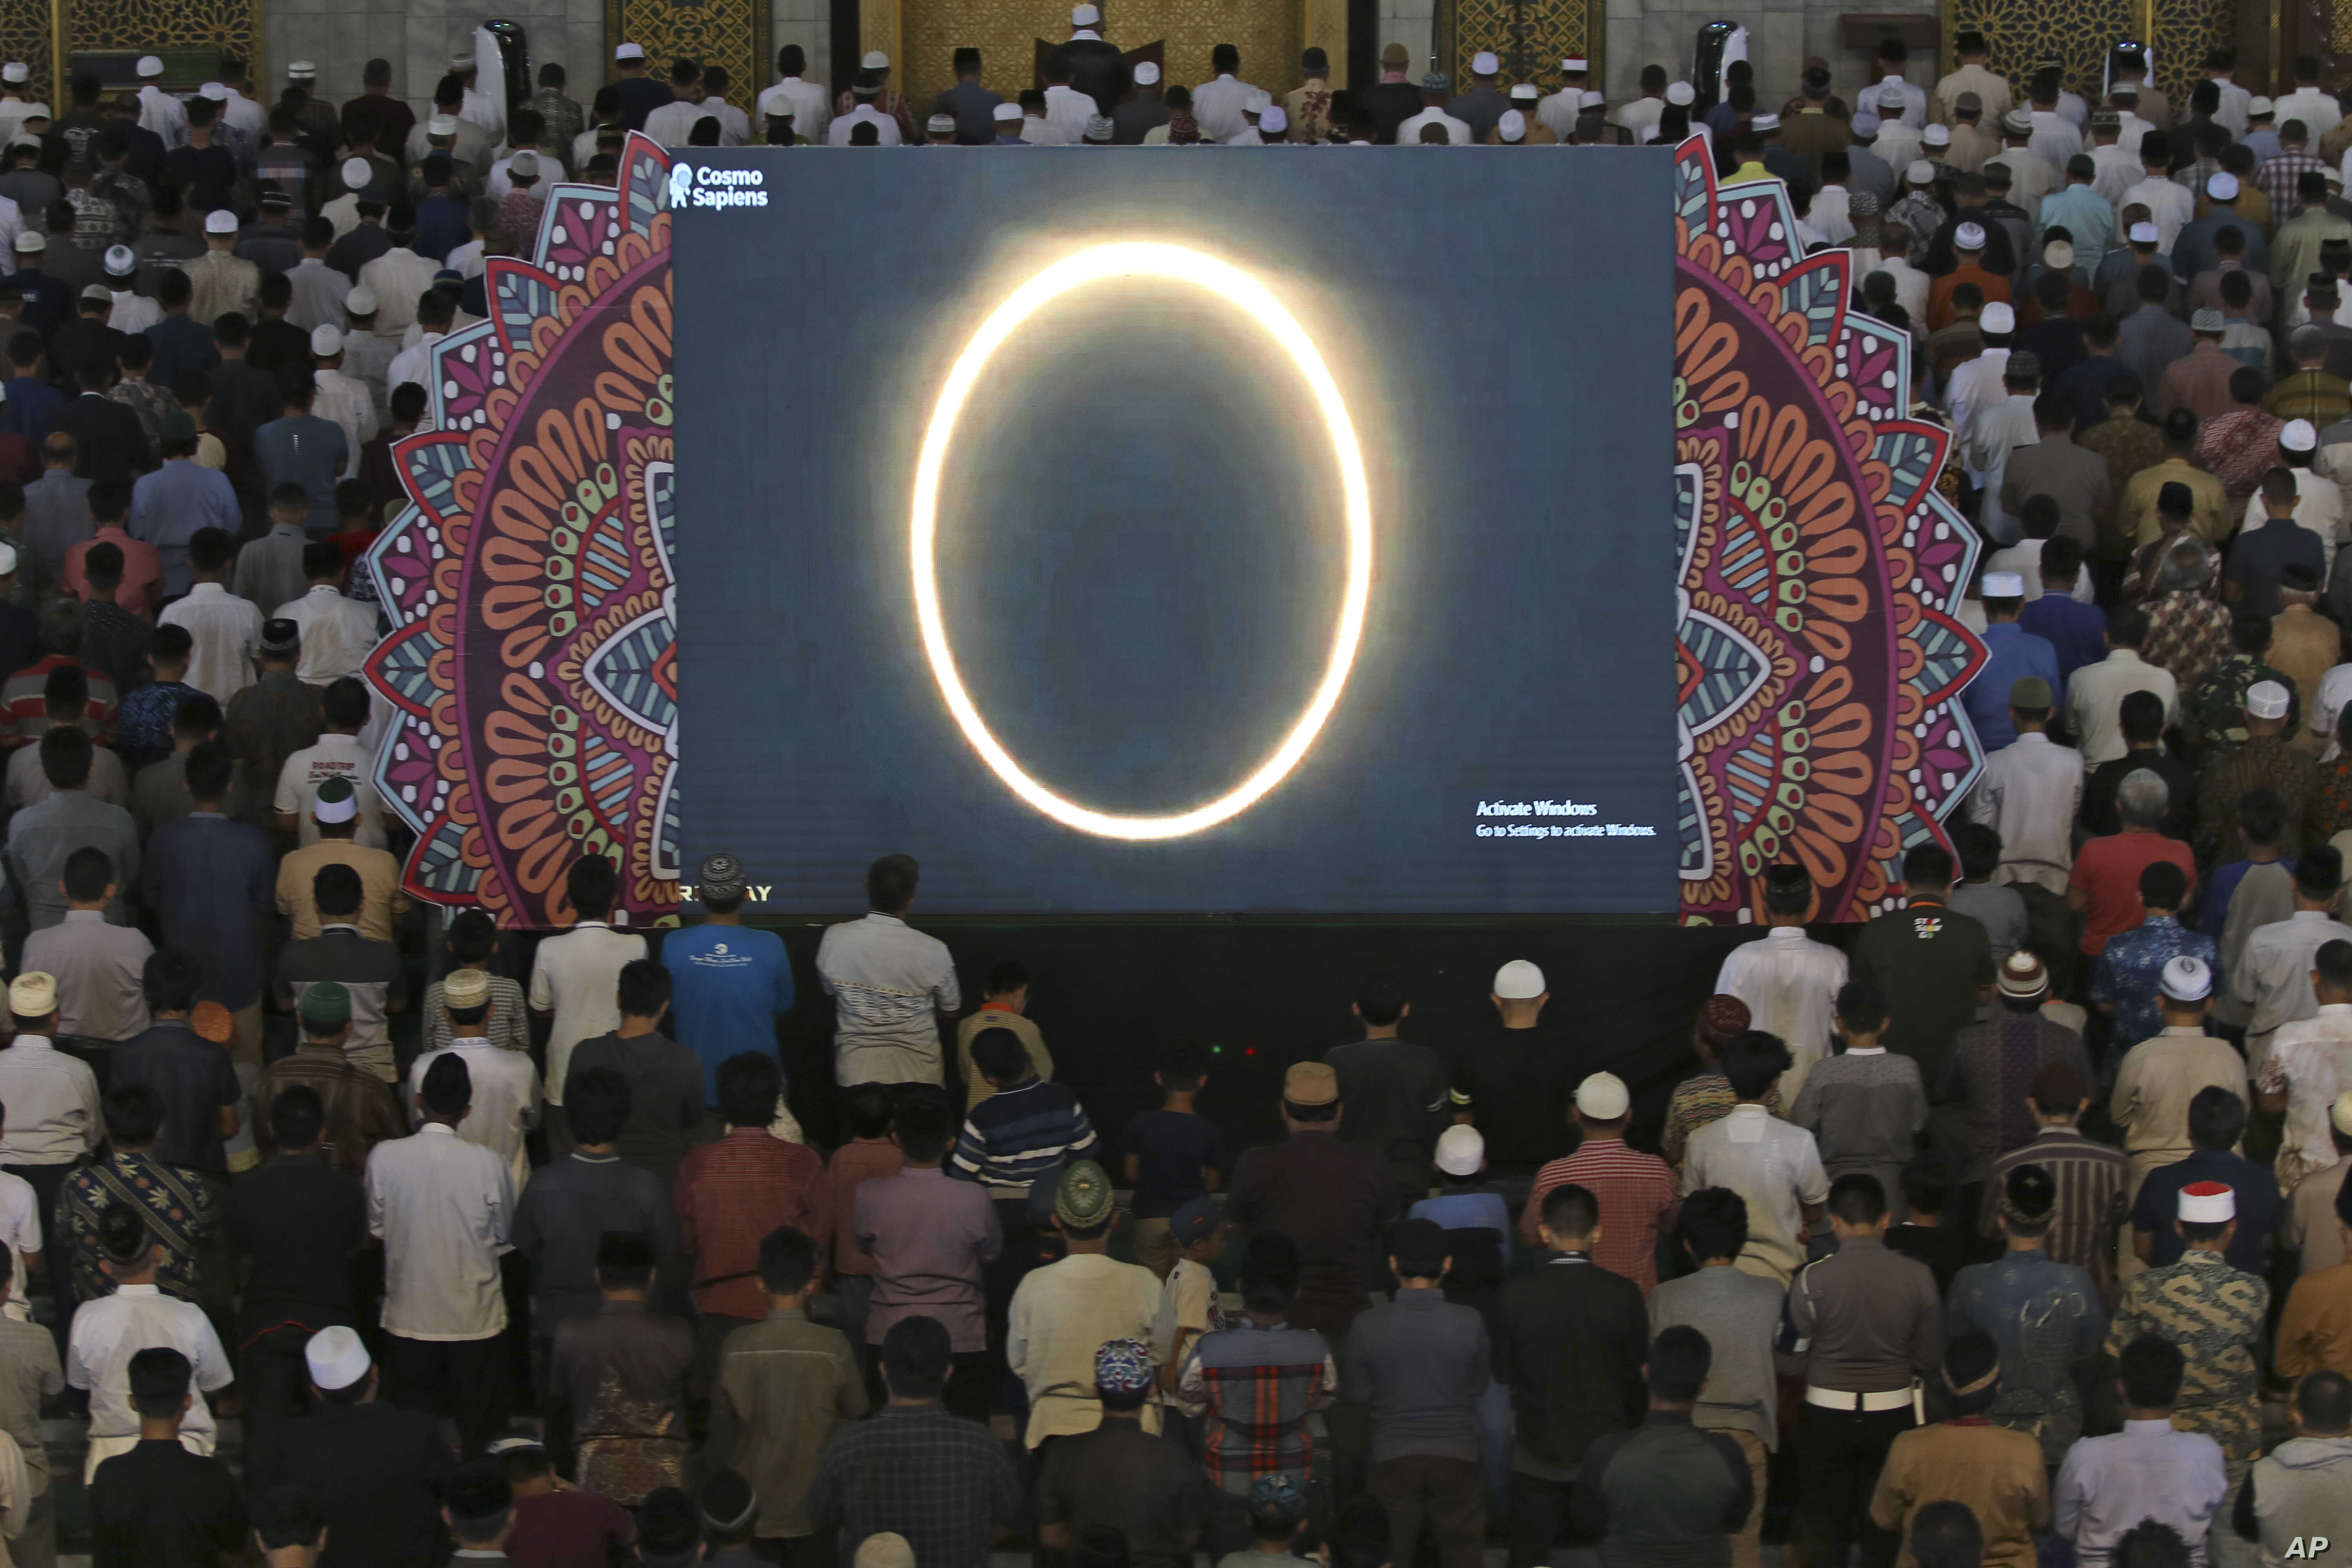 Muslim men perform a special 'kusoof' prayer as a live report of the annular solar eclipse is broadcast on a large screen at a mosque in Surabaya, East Java, Indonesia.